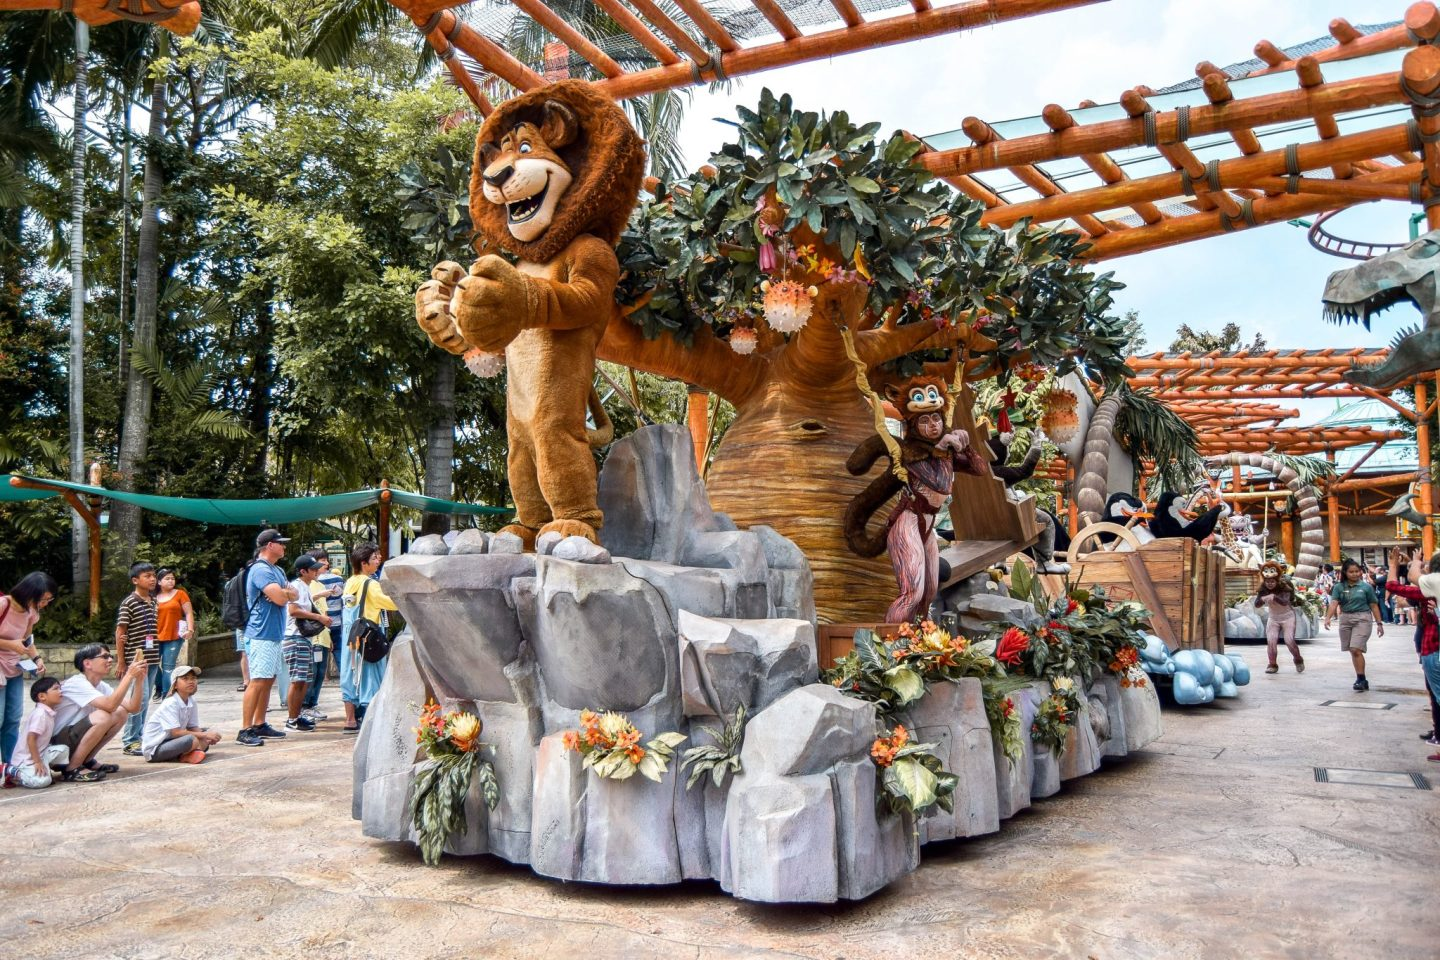 Wanderers & Warriors - Hollywood Dreams Parade - Universal Studios Singapore - Best Rides & Guide